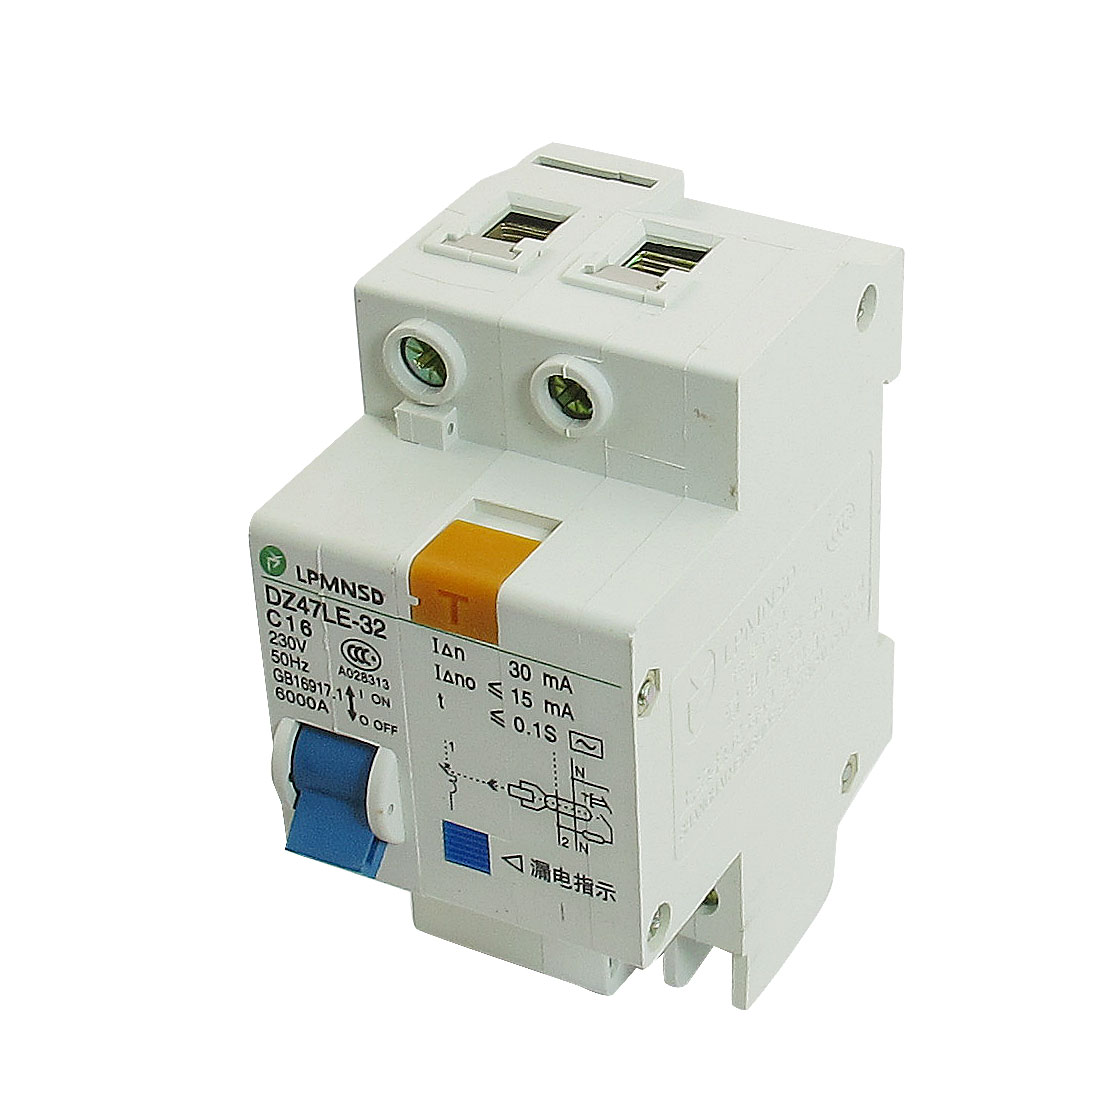 DIN Dail 1P Overload Proetction Circuit Breaker 230VAC 16A 6000A DZ47LE-32